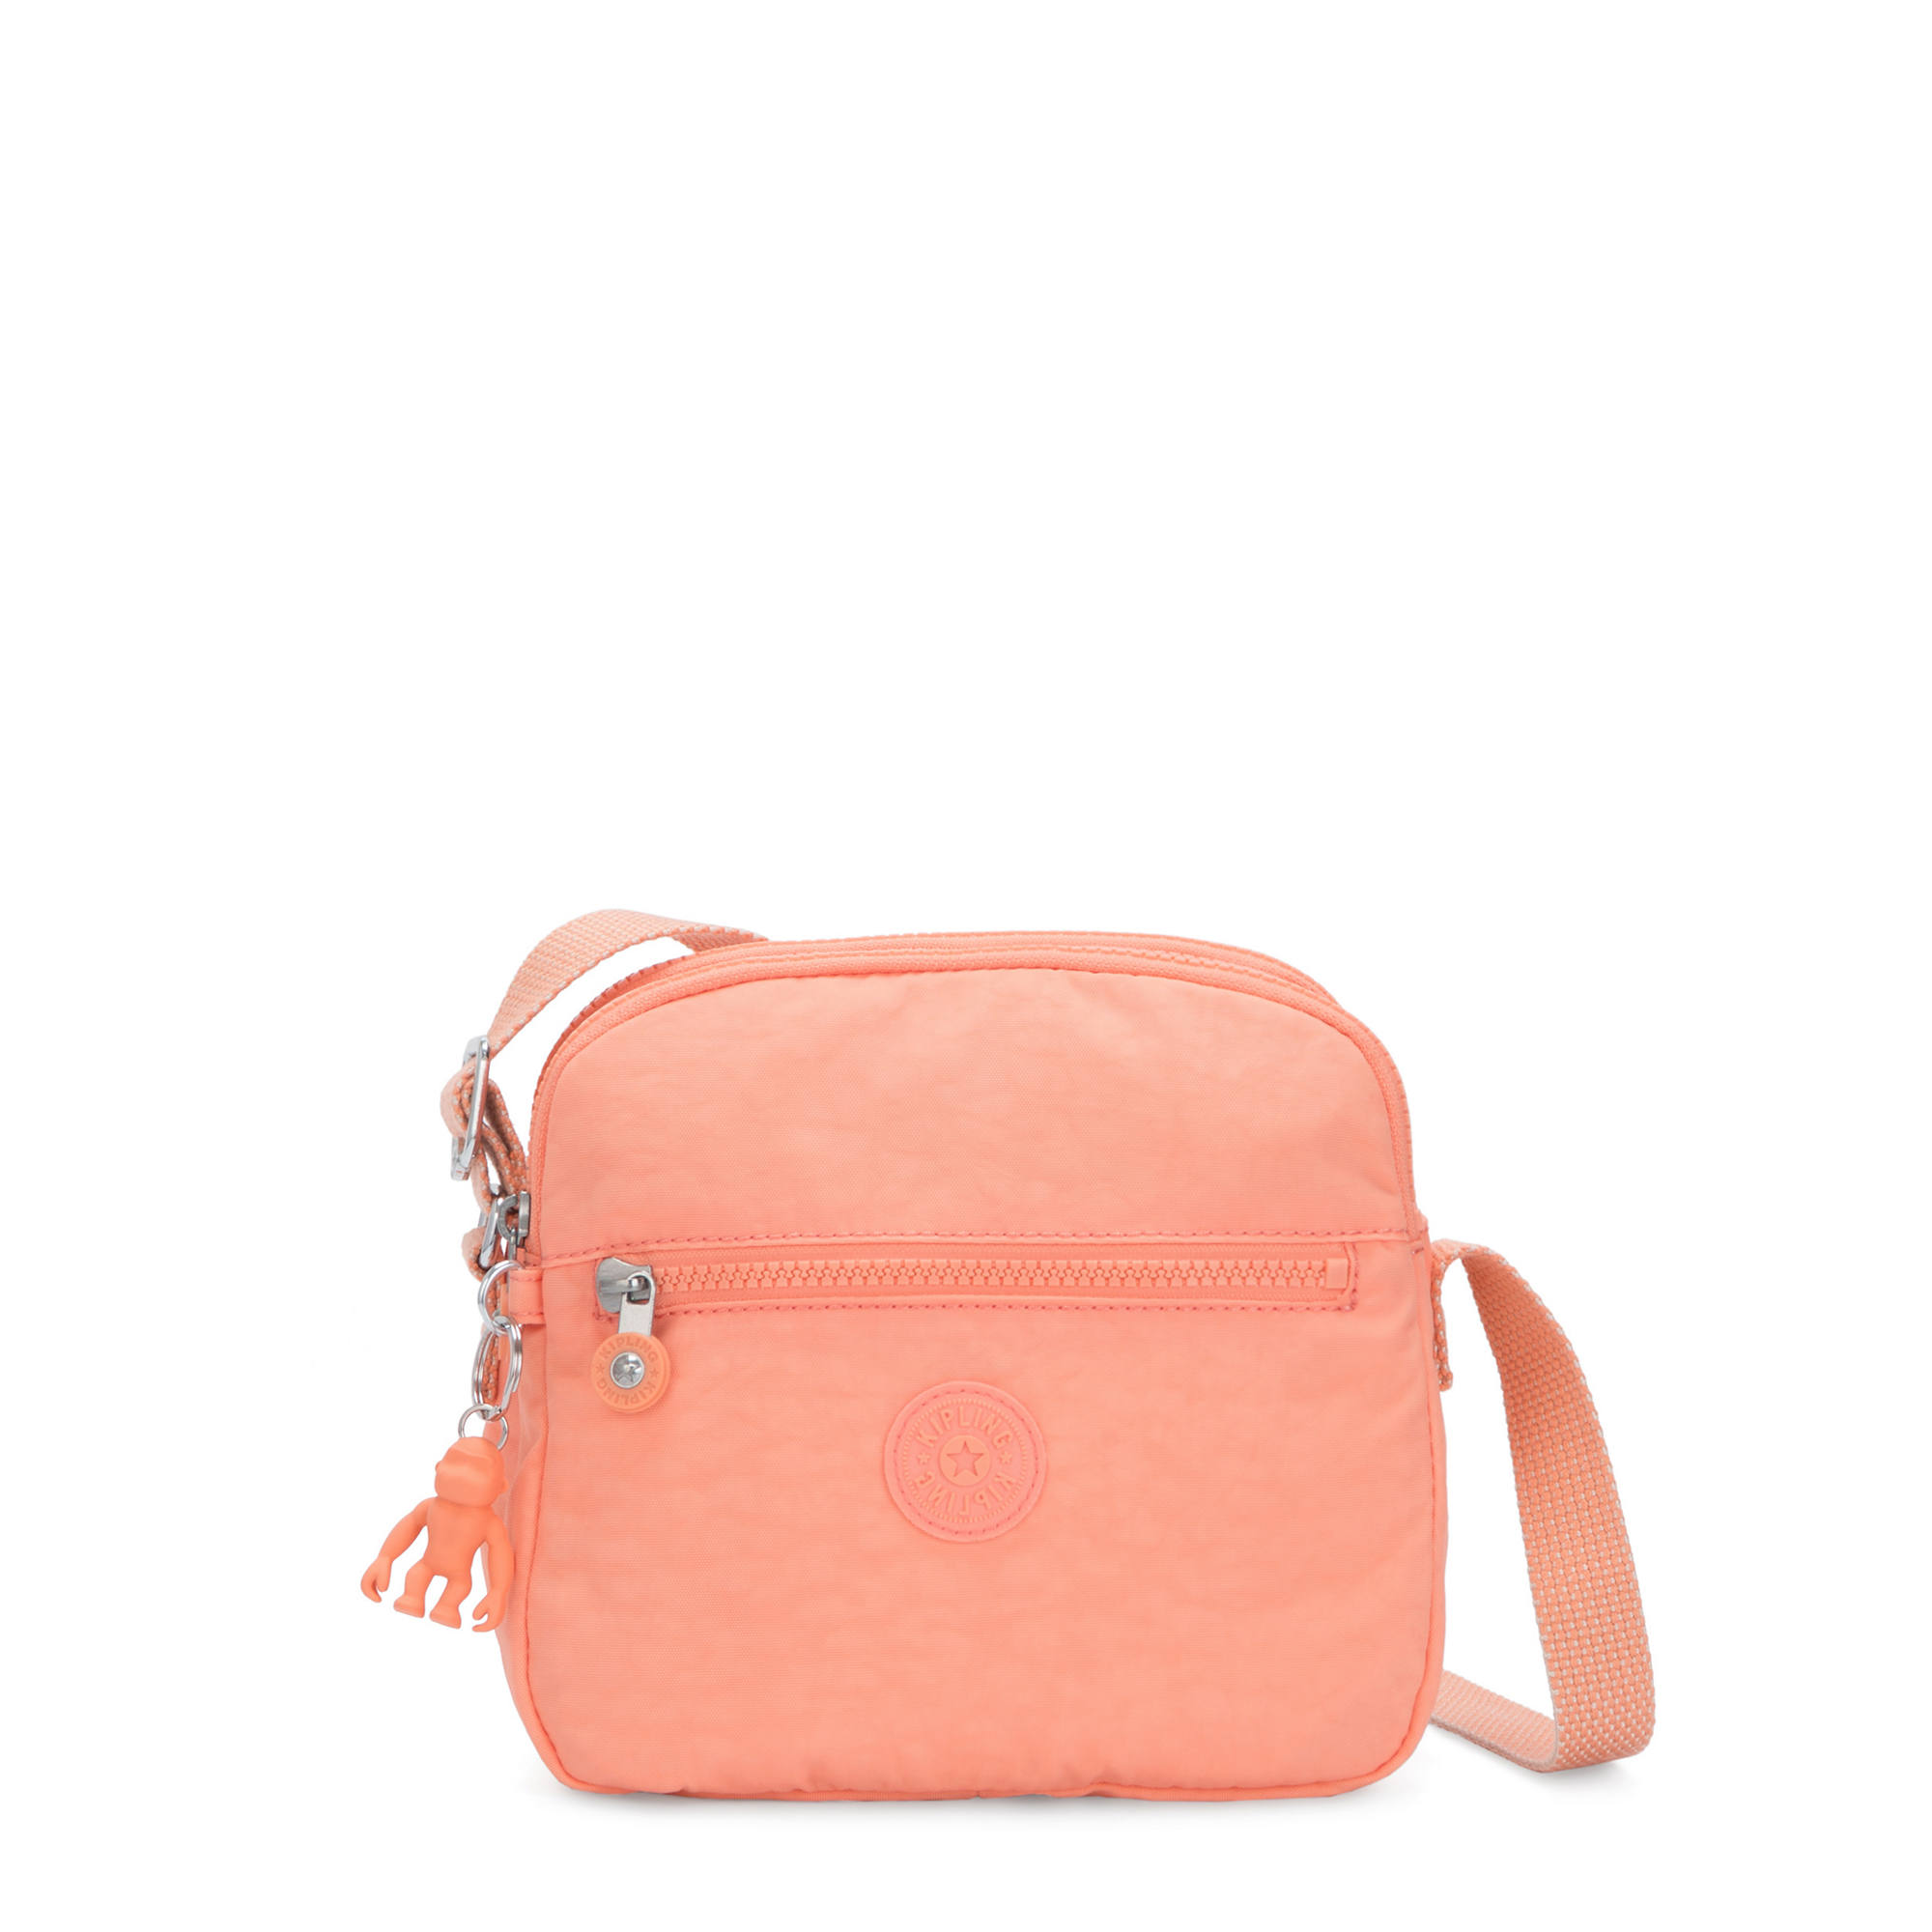 Keefe Crossbody Bag,Peachy Coral,large-zoomed